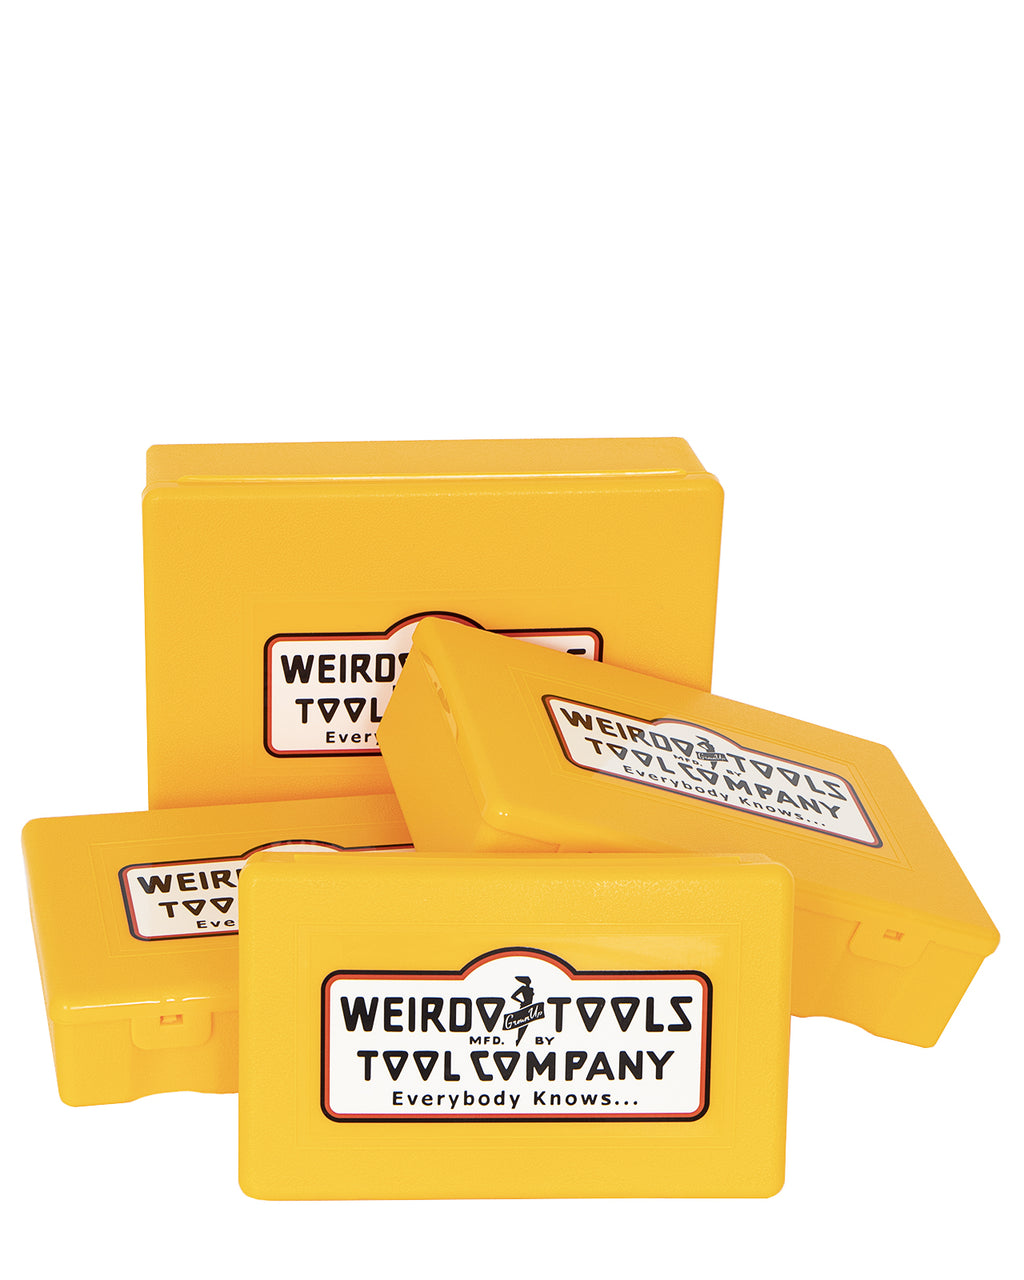 Weirdo Tool Company, Case, Yellow